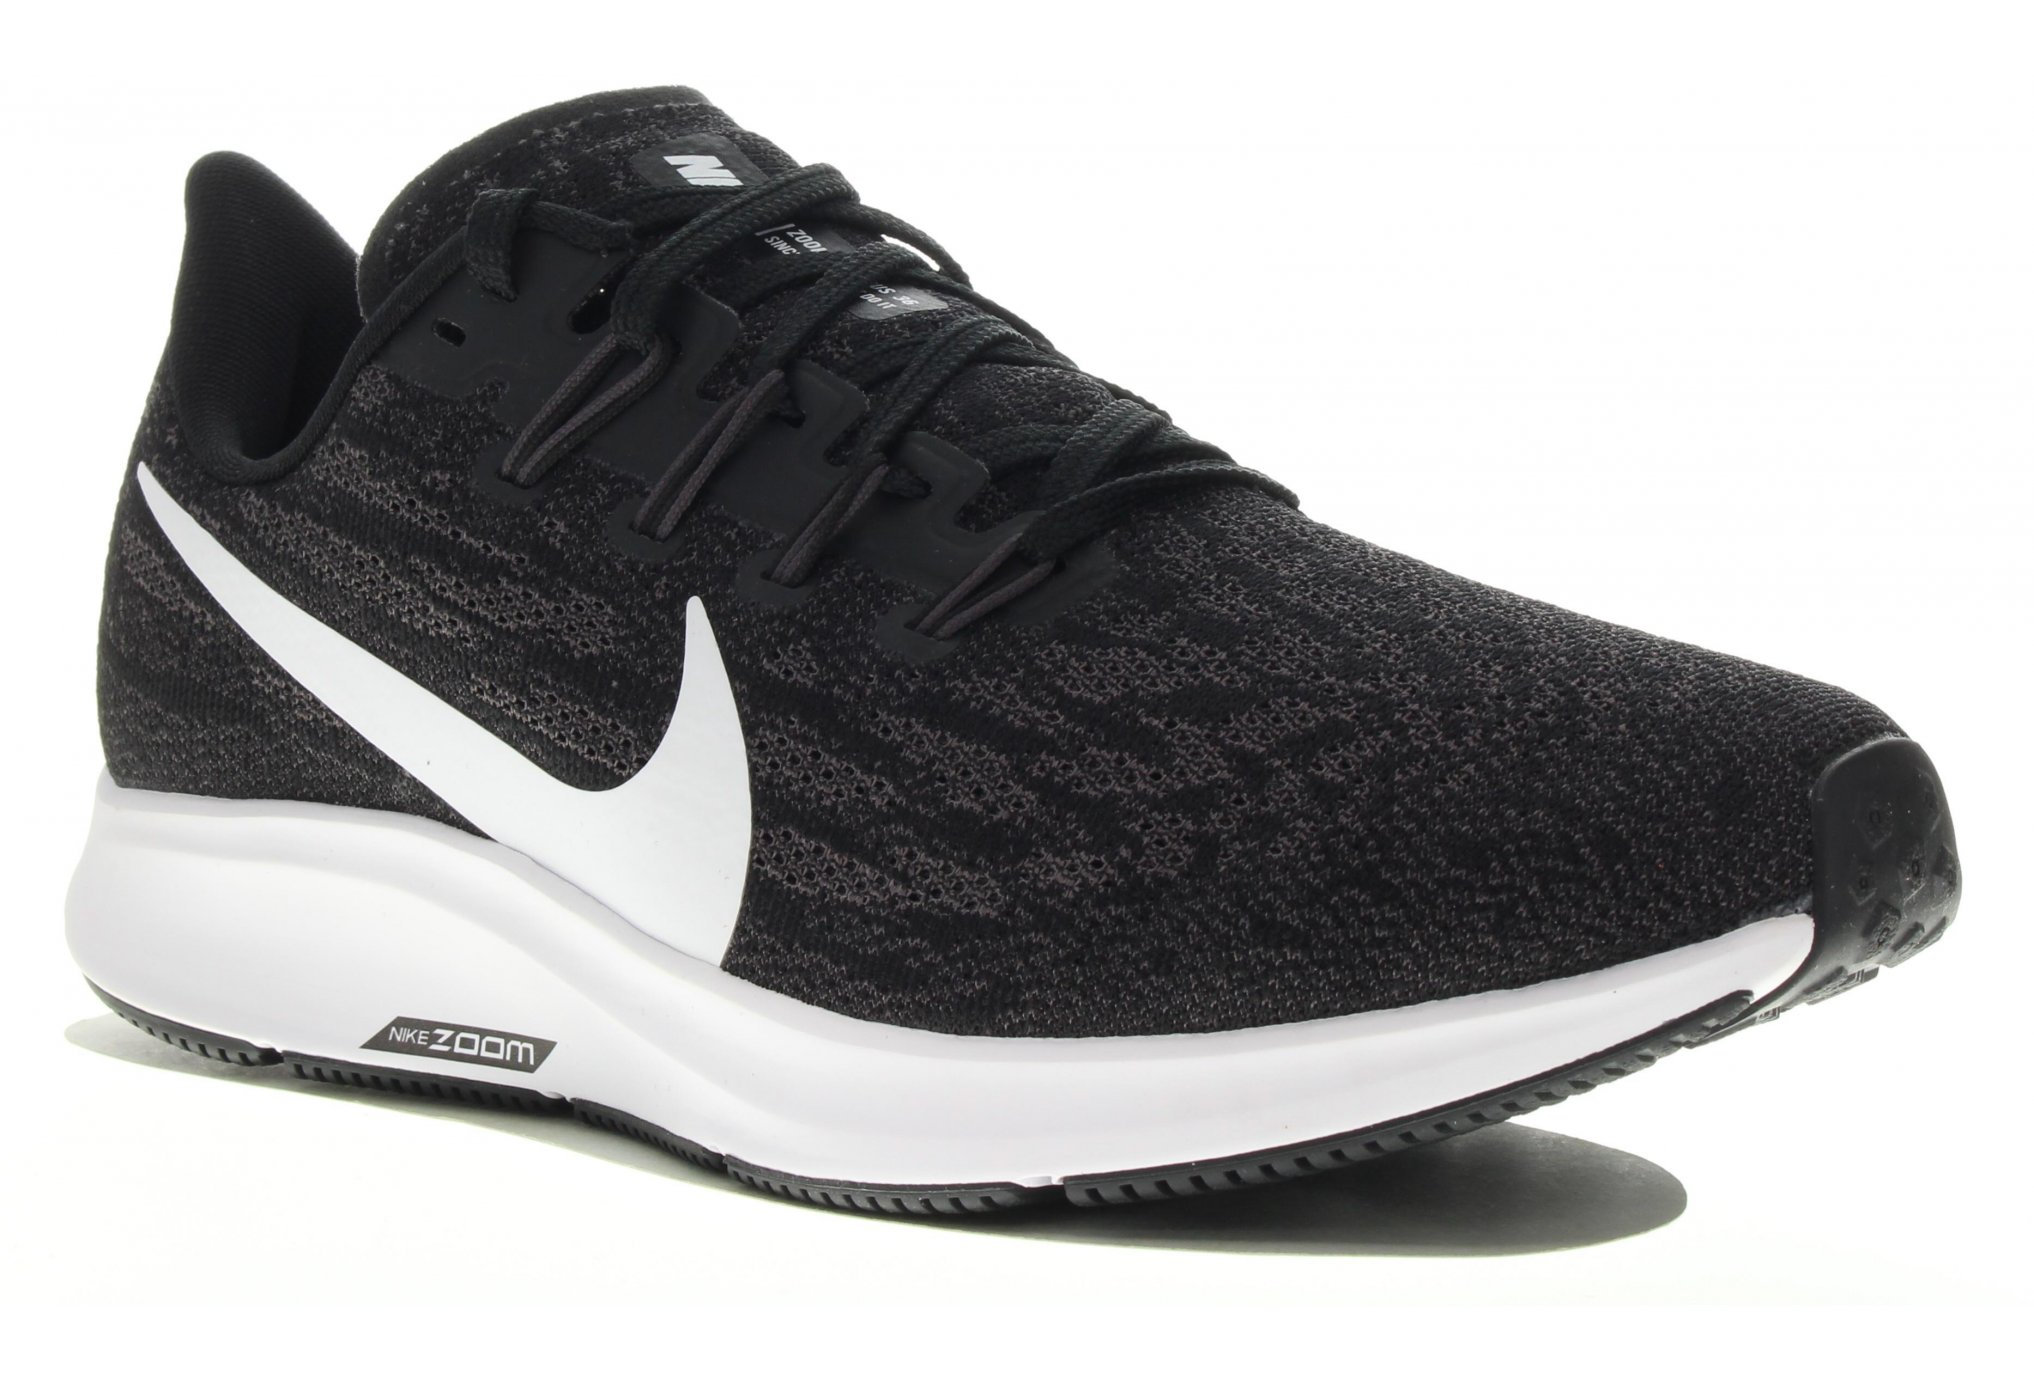 Nike Air Zoom Pegasus 36 Wide Chaussures running femme